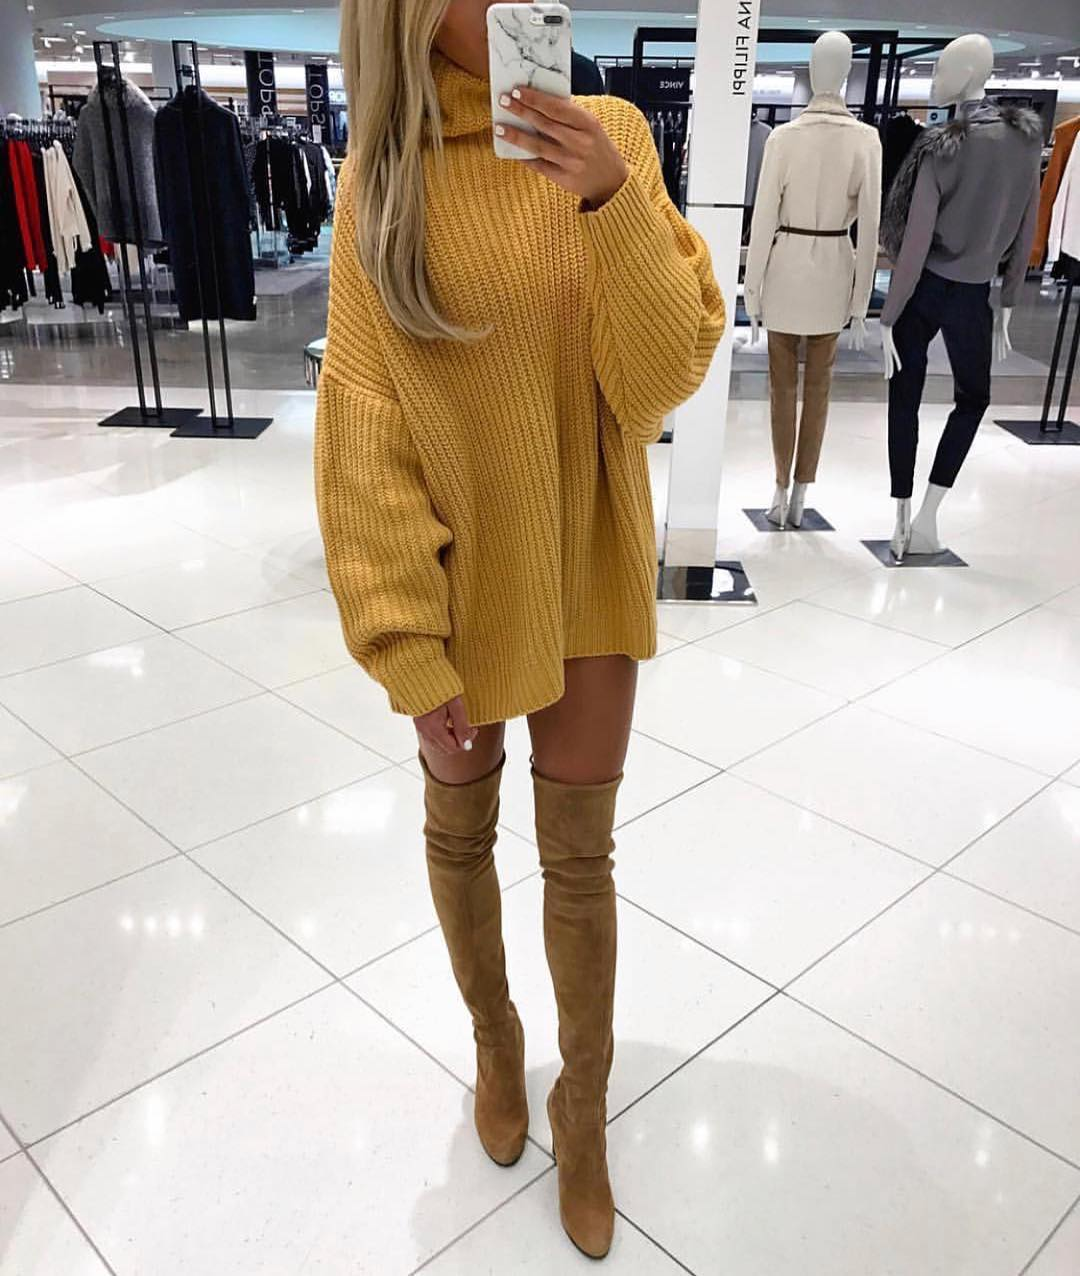 High Neck Mustard-Yellow Sweater Dress In Oversized Fit And Suede OTK Boots 2020